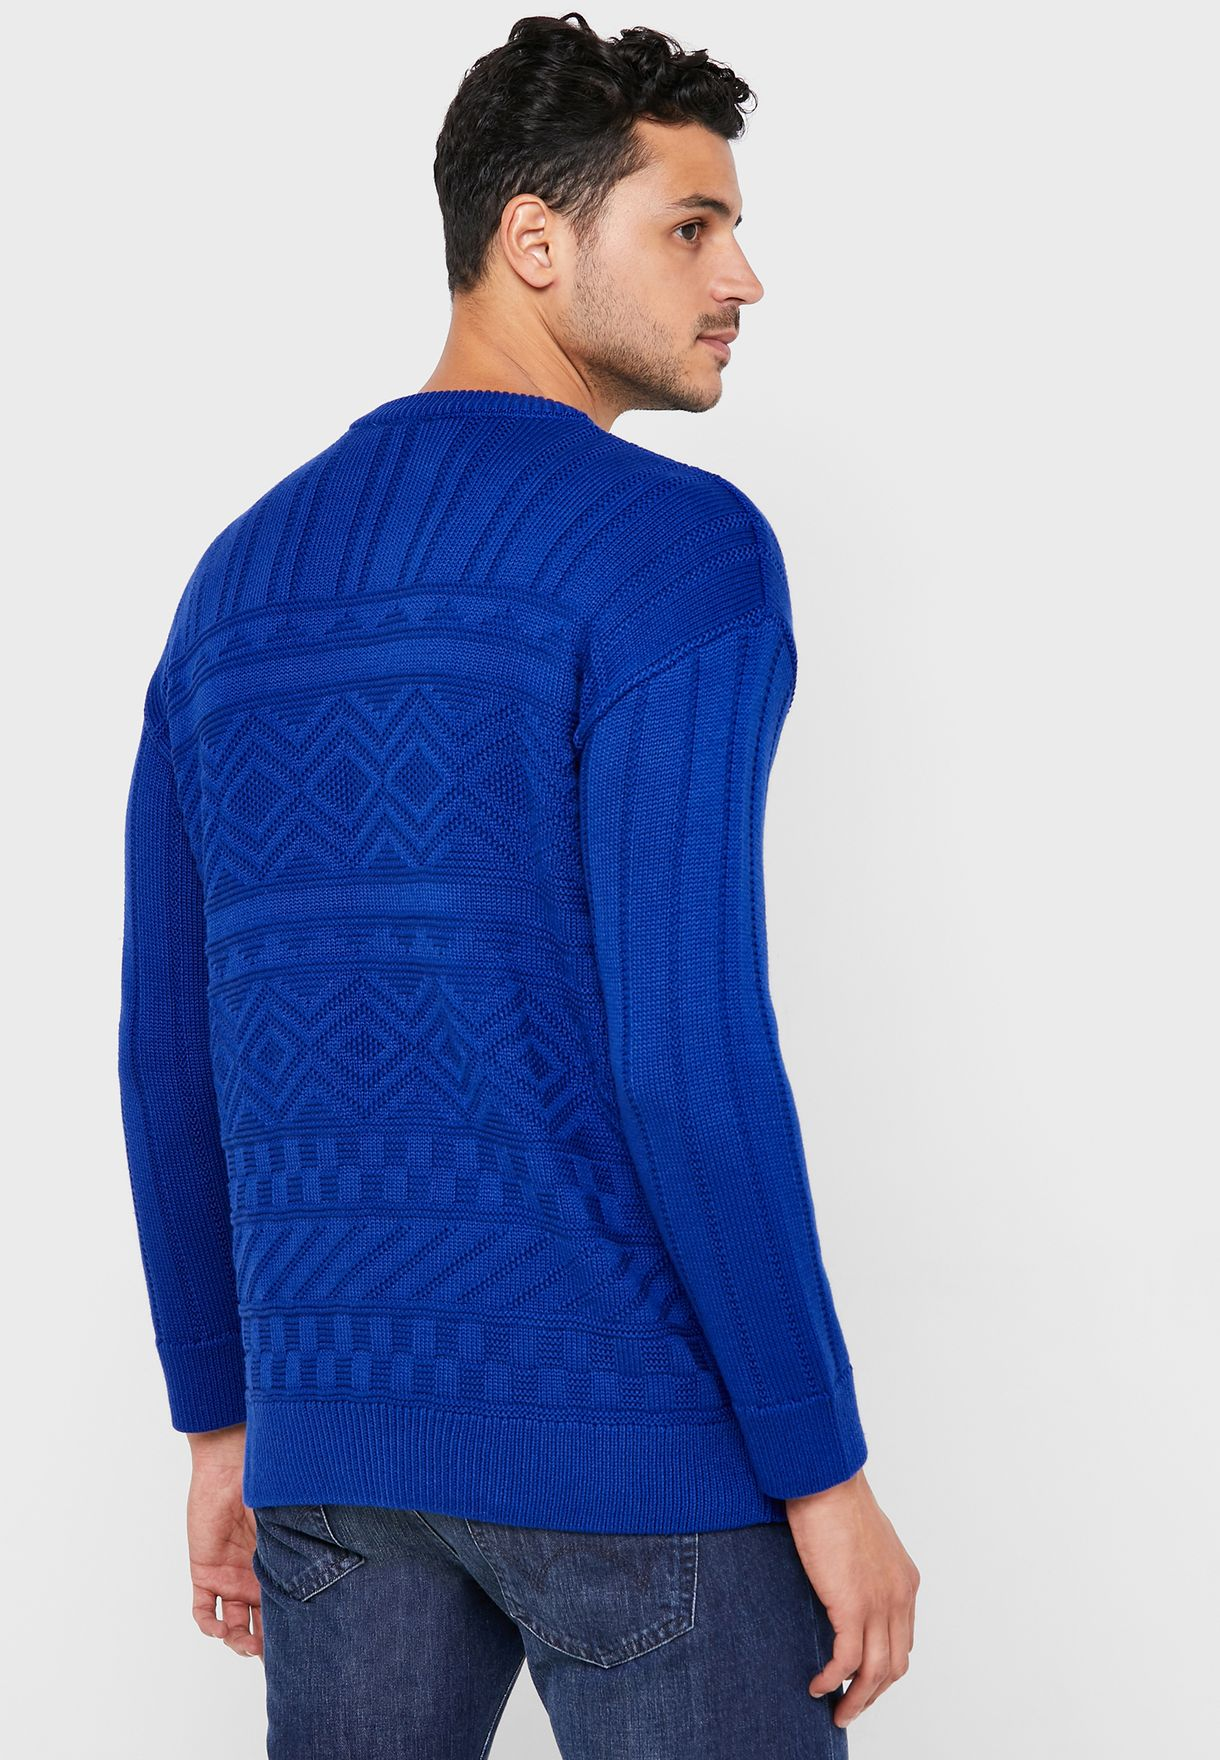 New York Cable Knit Sweater